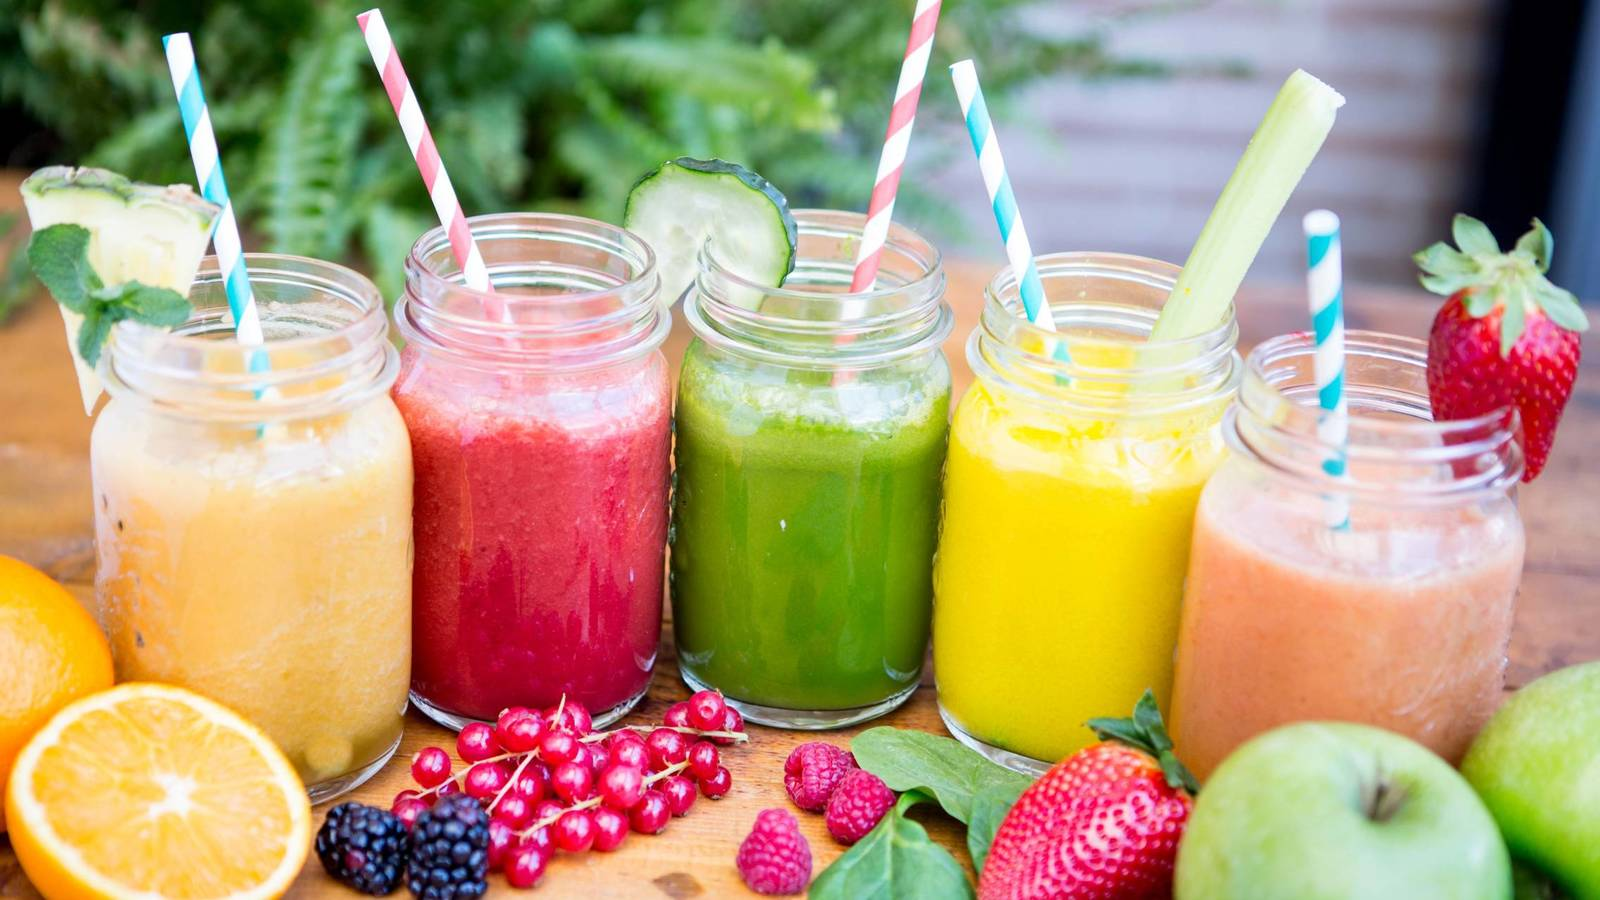 What are Green Smoothies?